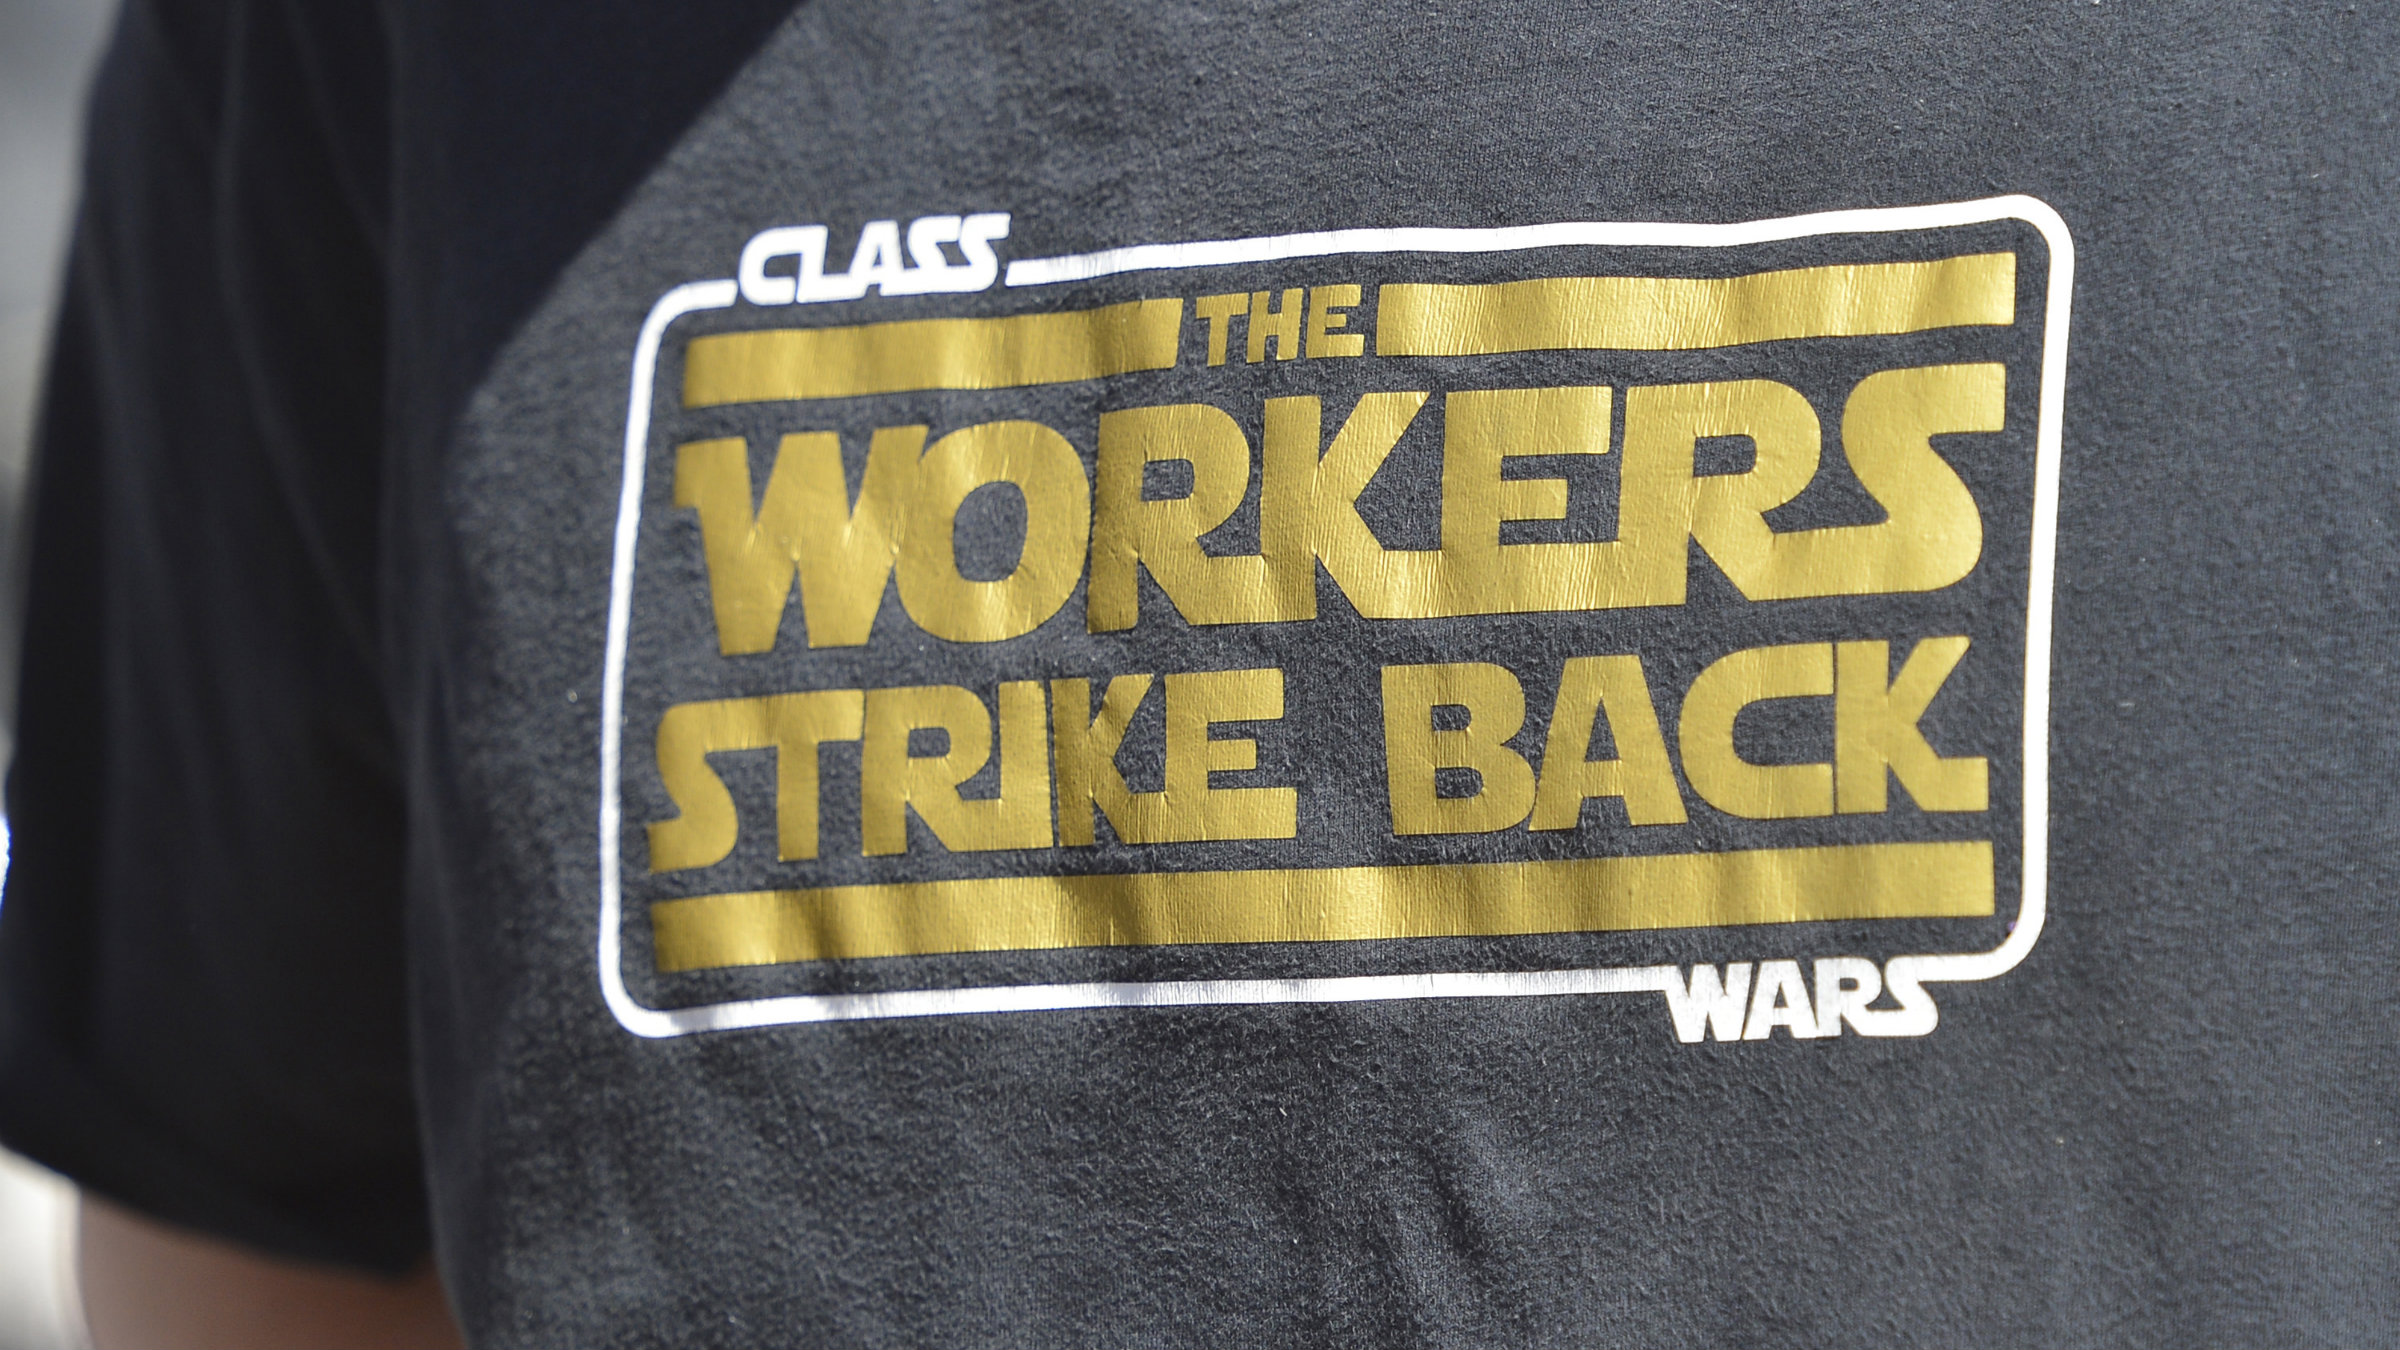 """A t-shirt reads """"Class Wars: The Workers Strike Back"""""""